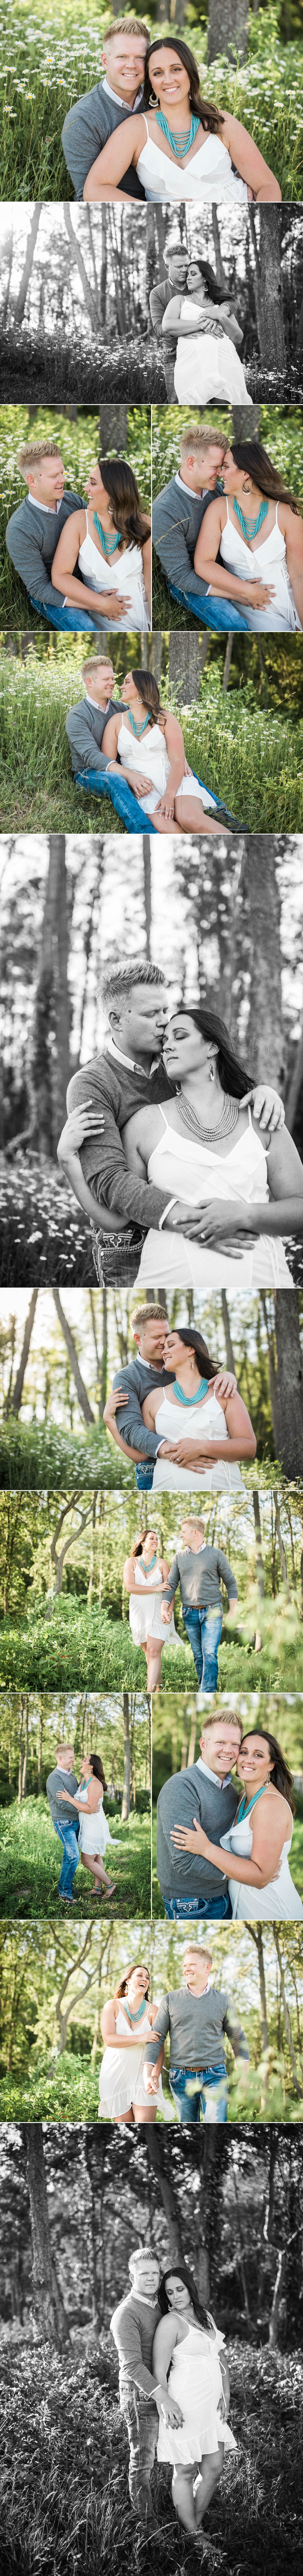 engagement - engaged - engagement session - e session - love - winery - wine - two ee's - sunset - woods